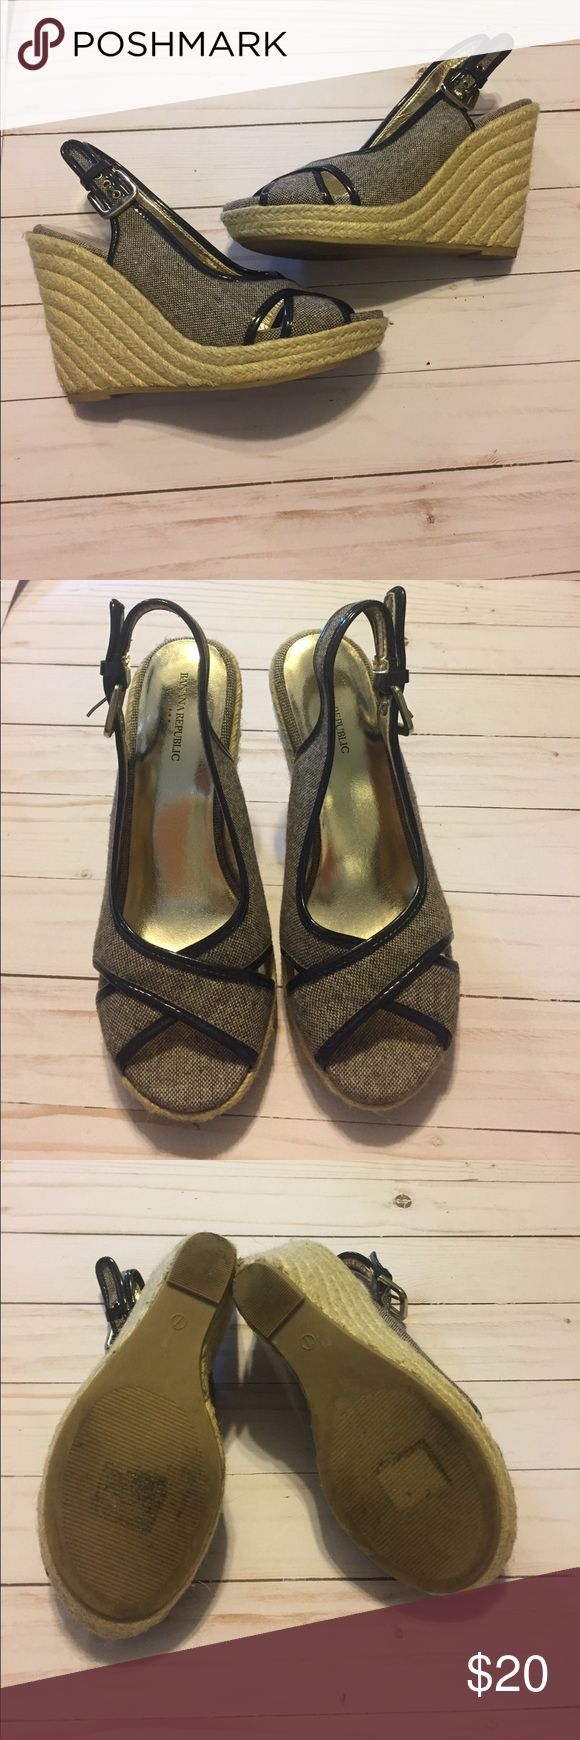 """EUC Banana Republic Wedge Heels 4 1/2"""" Wedge; great condition black outline with cream and brown color Banana Republic Shoes Wedges"""